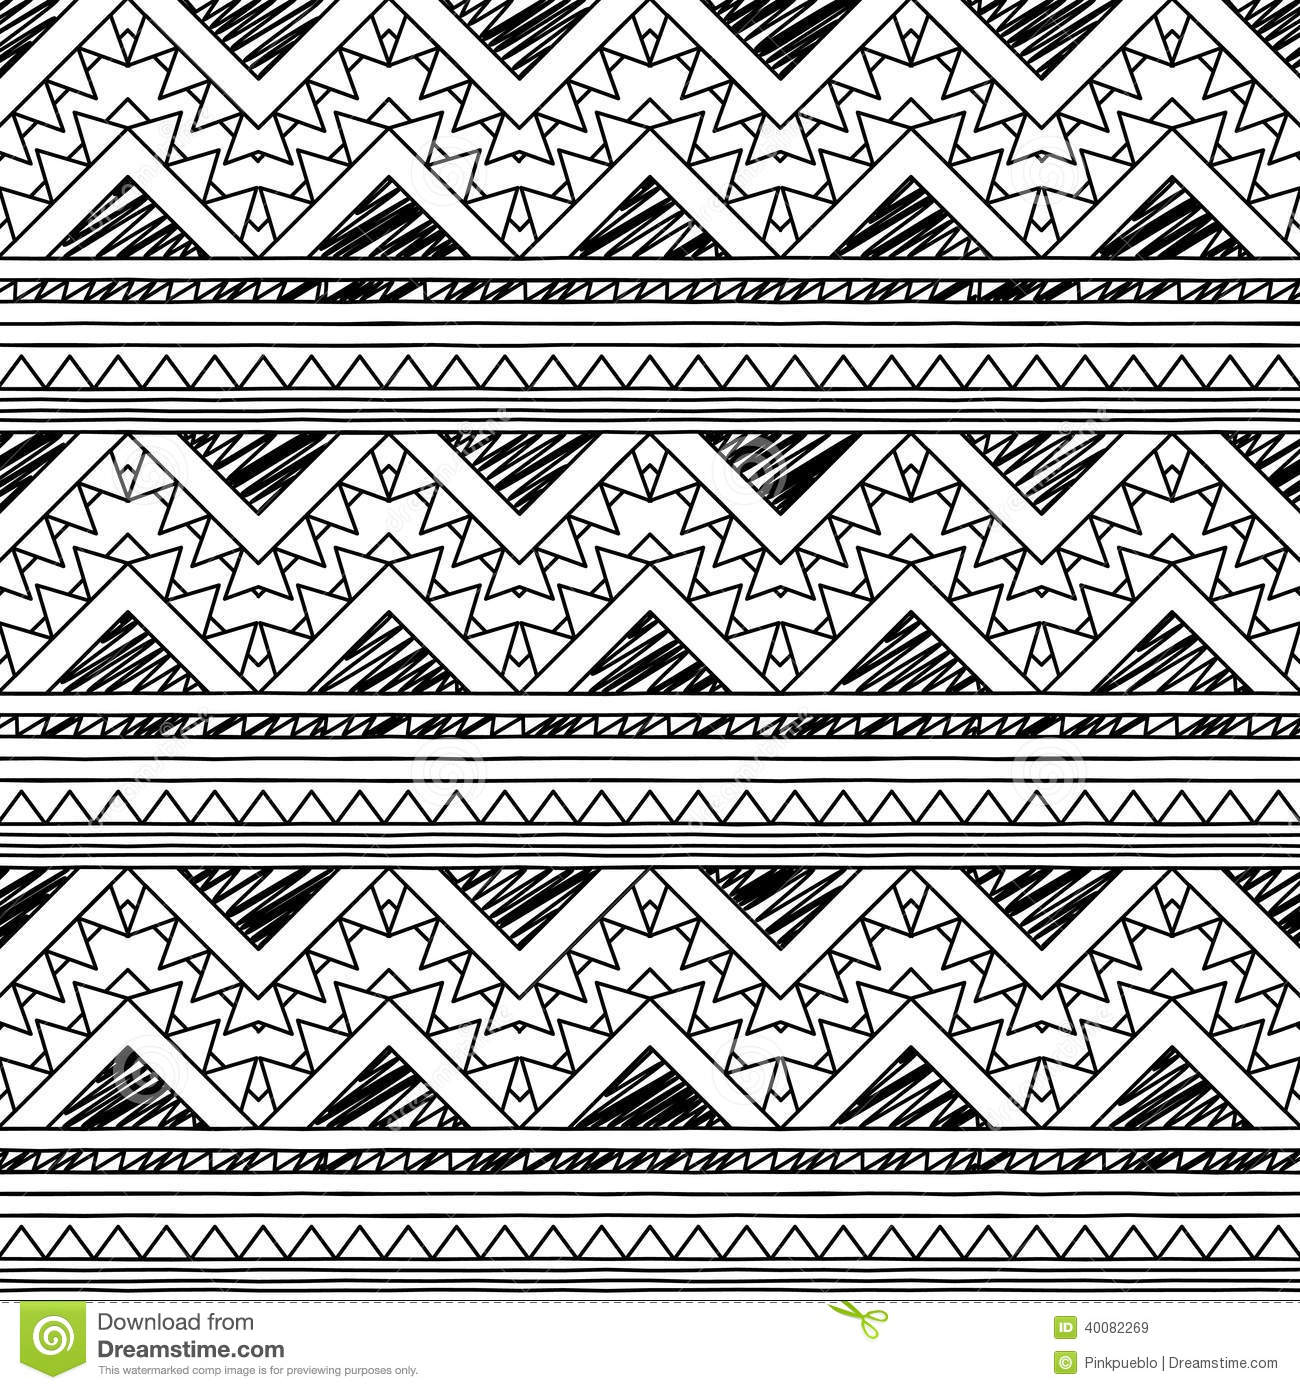 Tribal patterns tumblr black and white